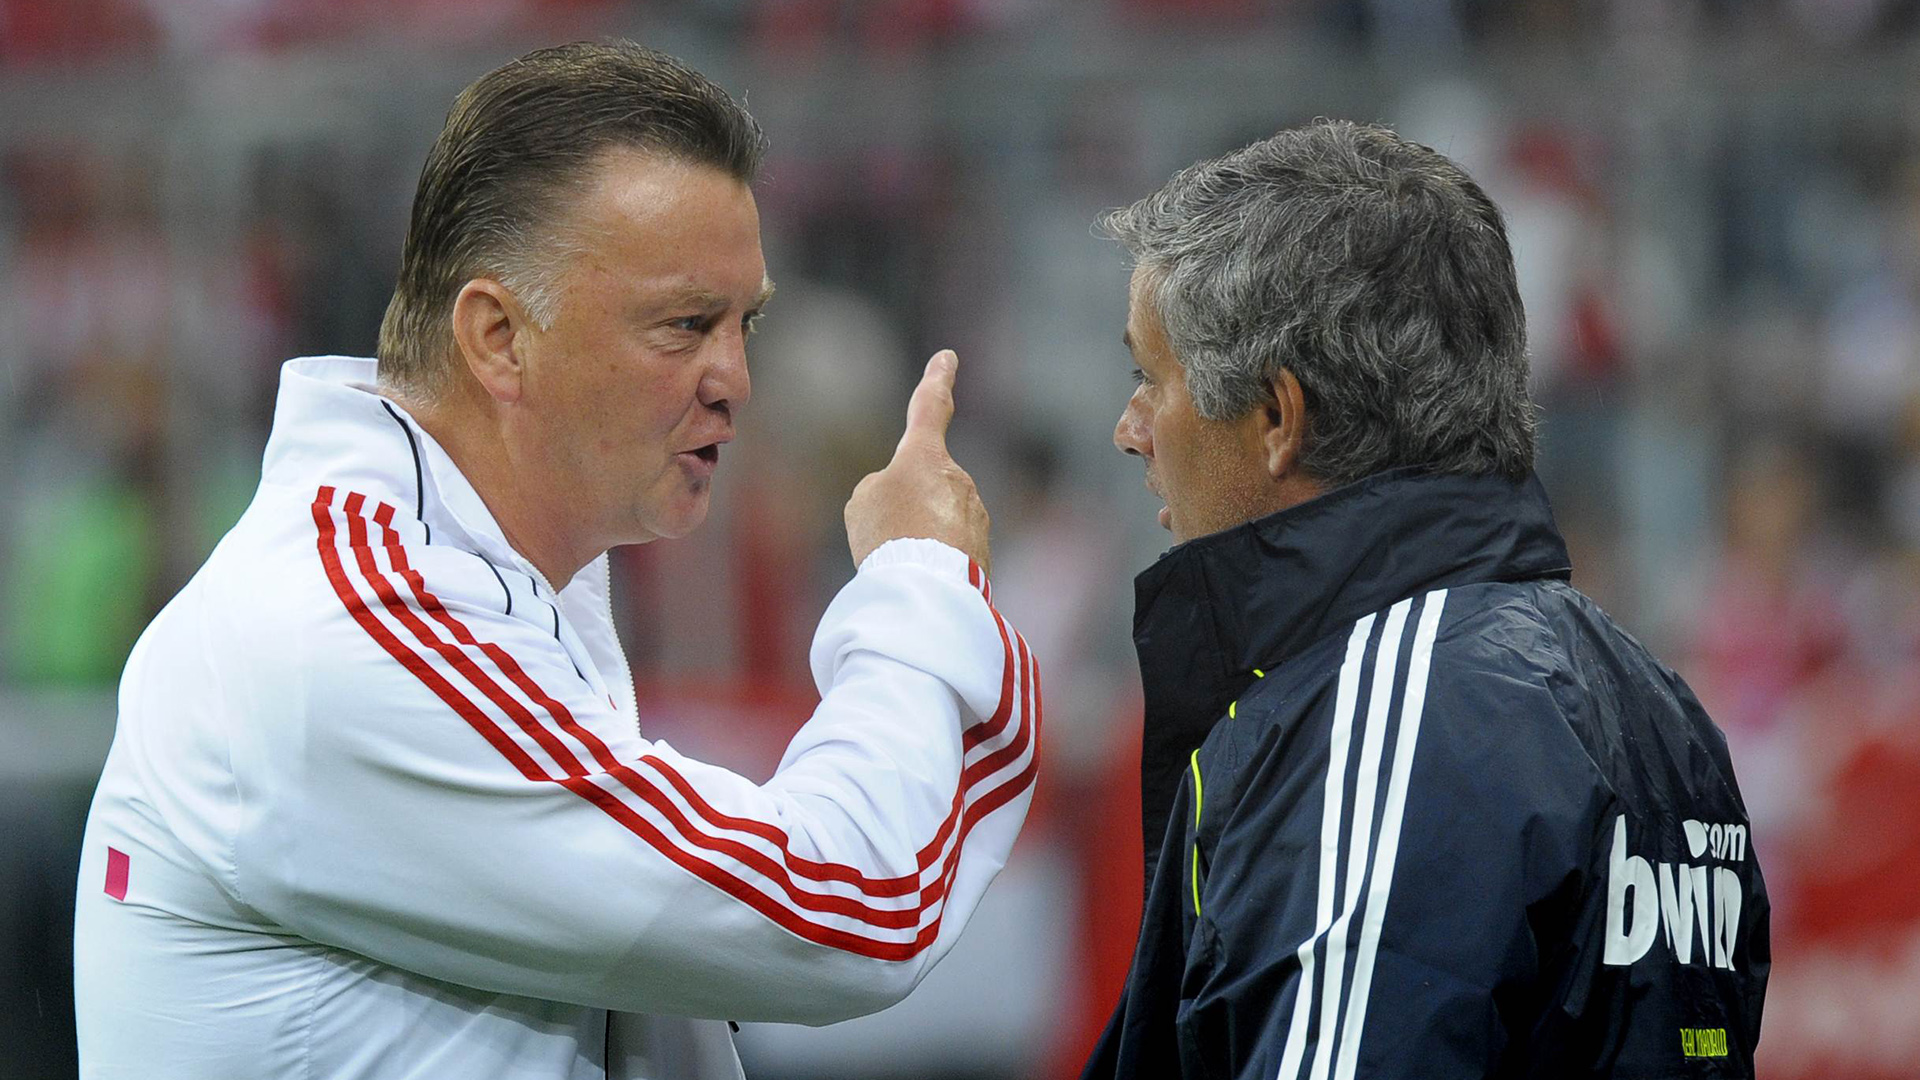 Van Gaal has 'unfinished business' with United